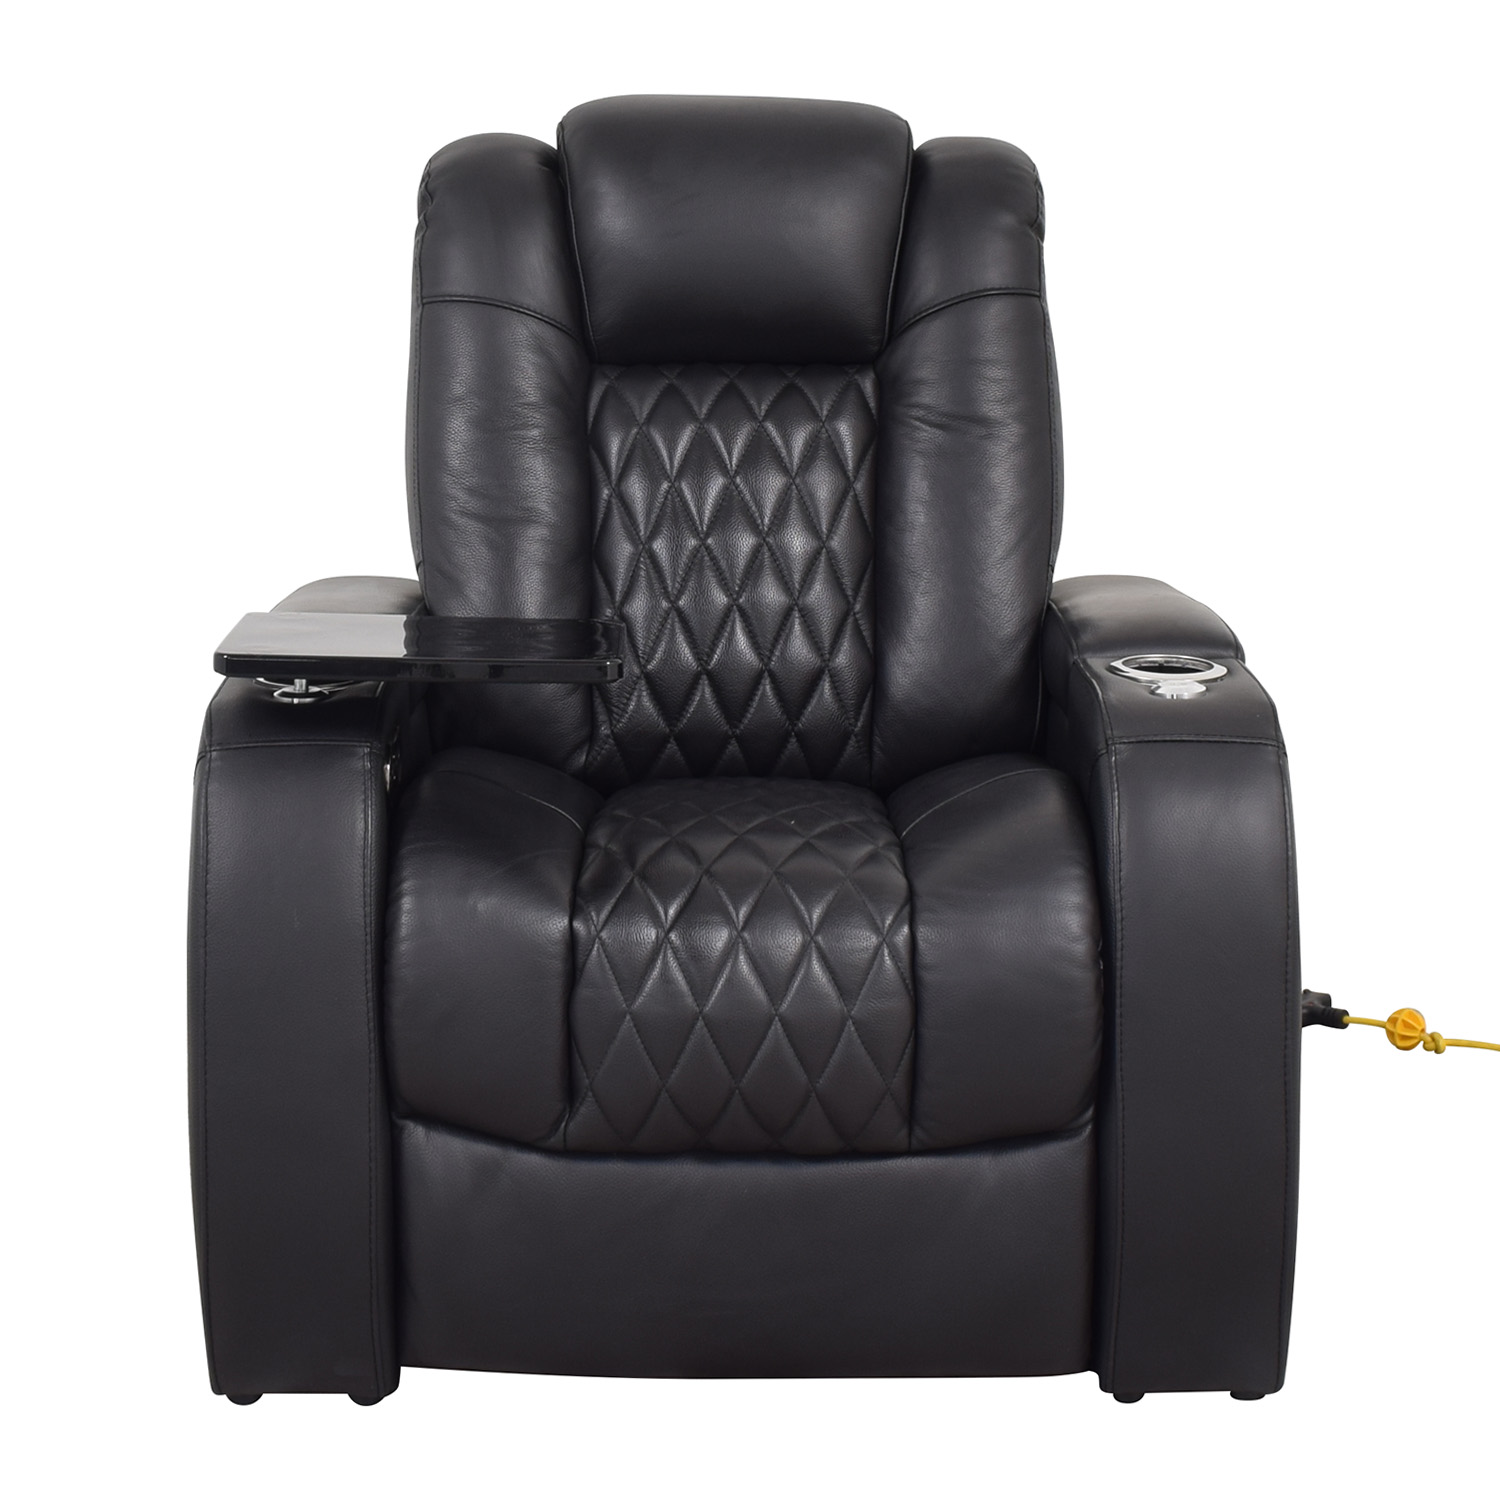 buy Seatcraft Diamante Home Theater Seating Leather Power Recliner Seatcraft Recliners